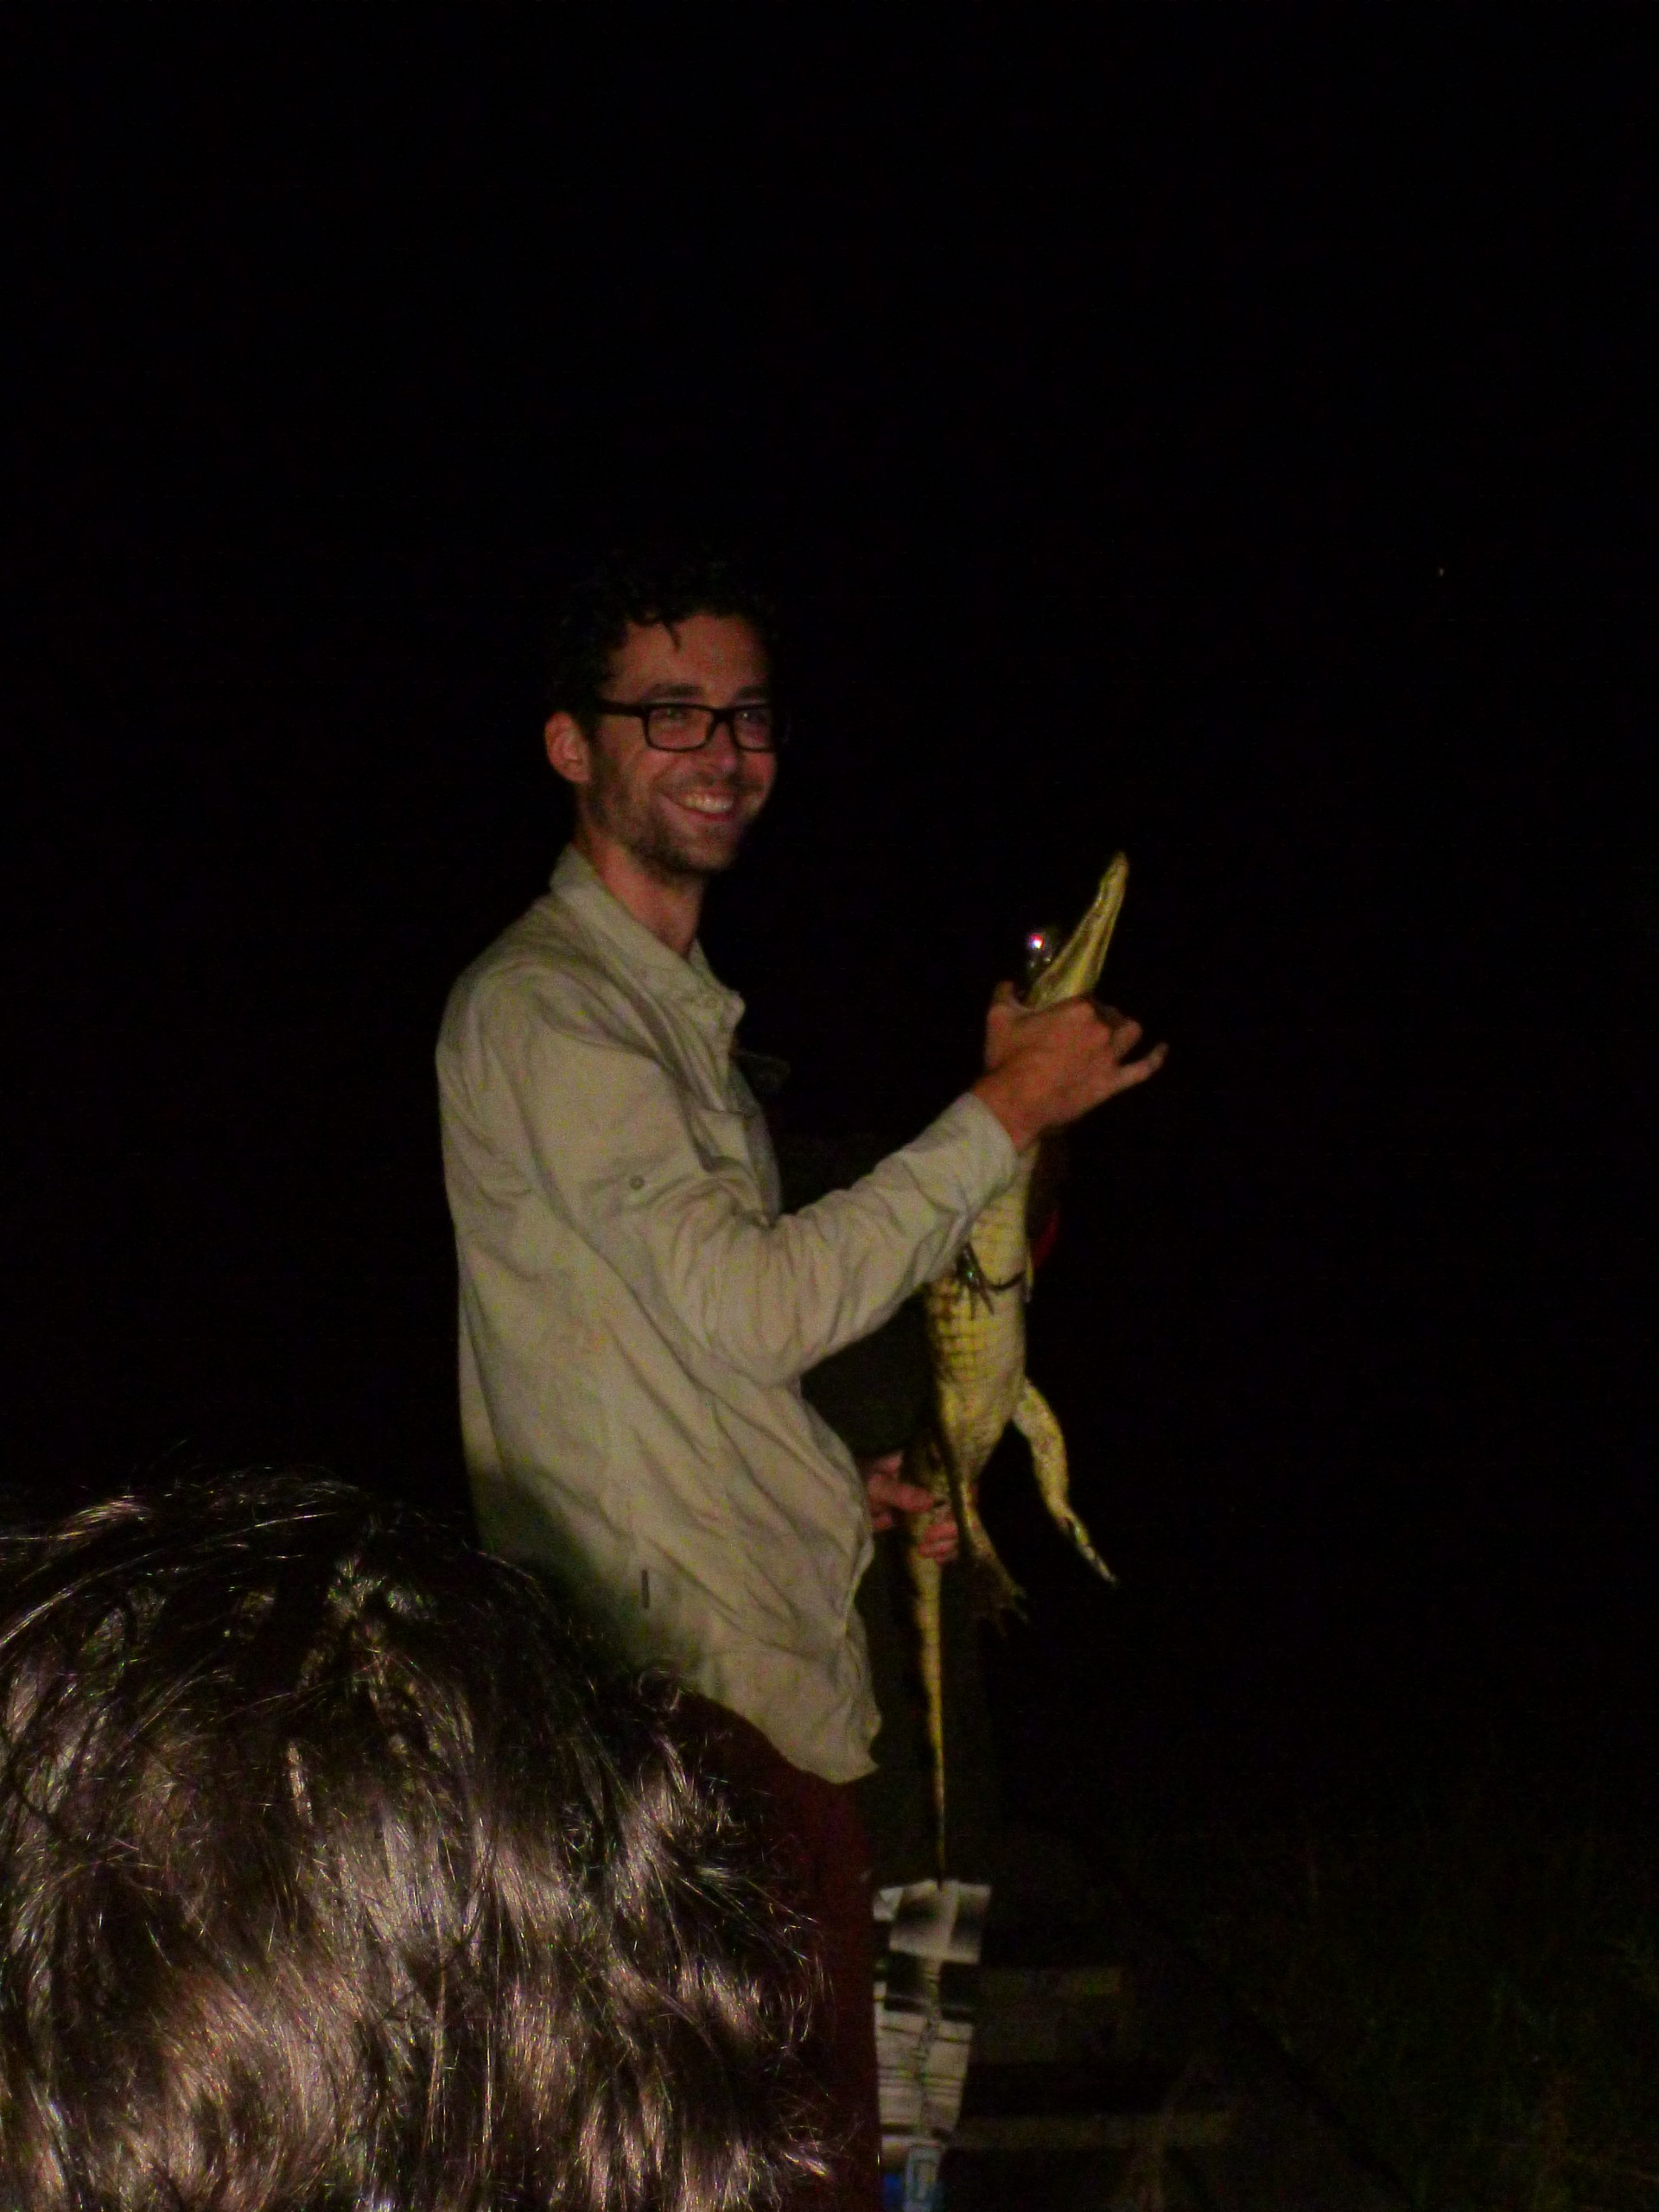 Aha! Finally a picture of a caiman. And me. Credit to Megan - thanks!